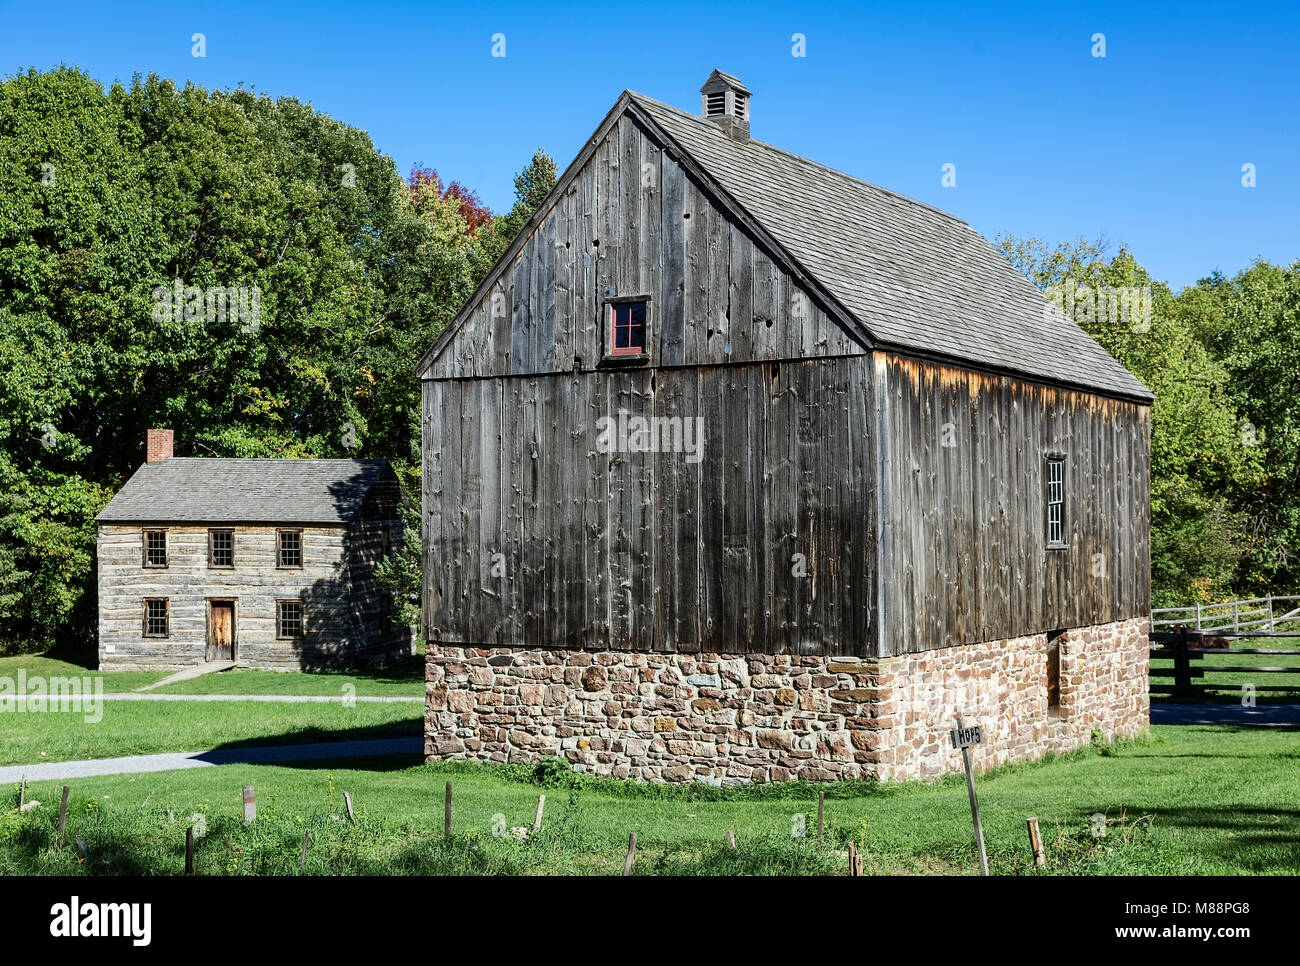 Barn and house, Genesee Country Village and Museum, Mumford, New York, USA. - Stock Image